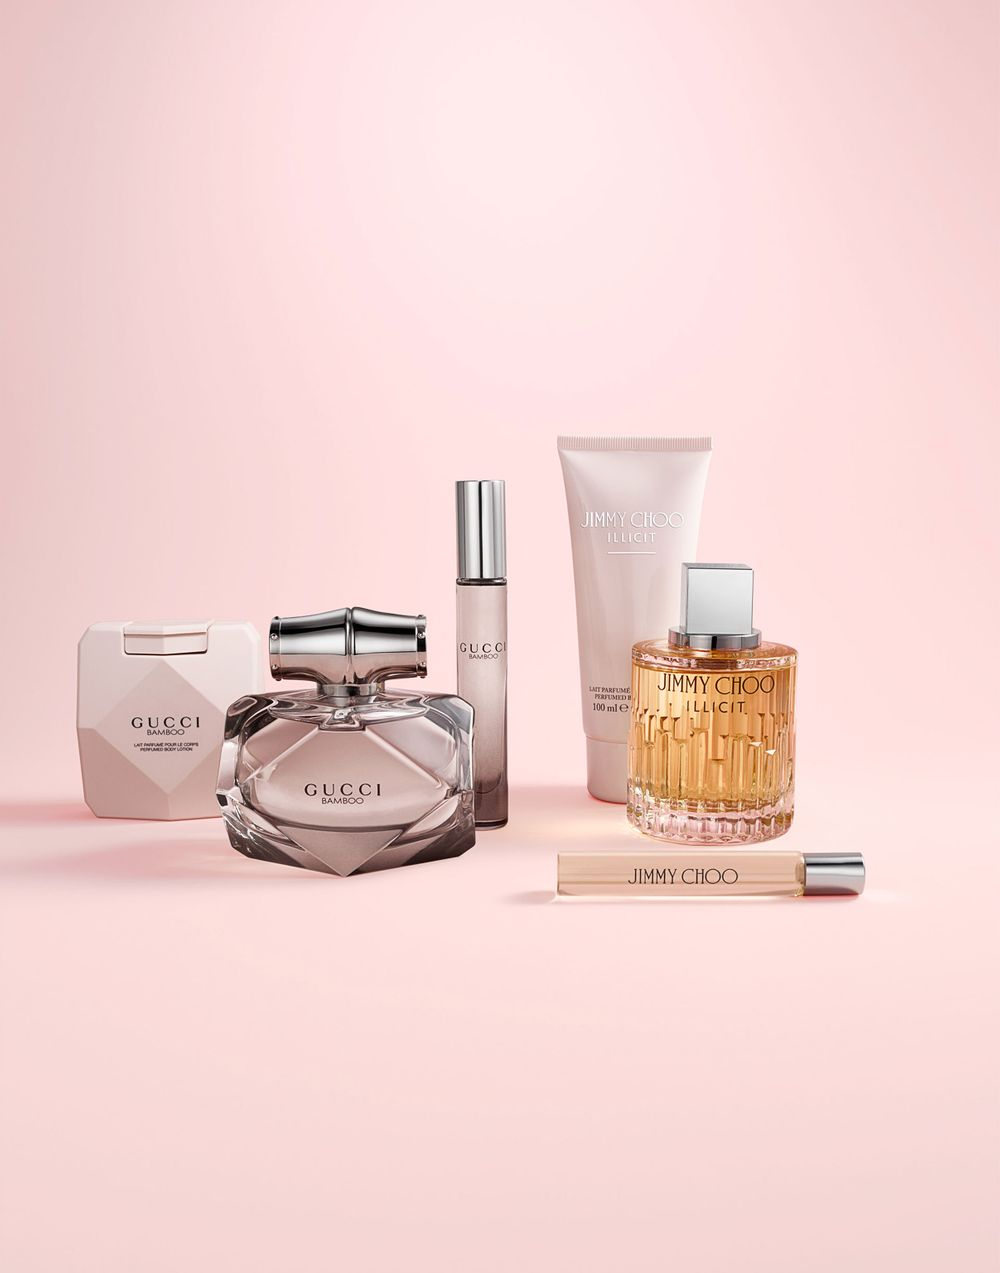 Product Advertising, Perfume